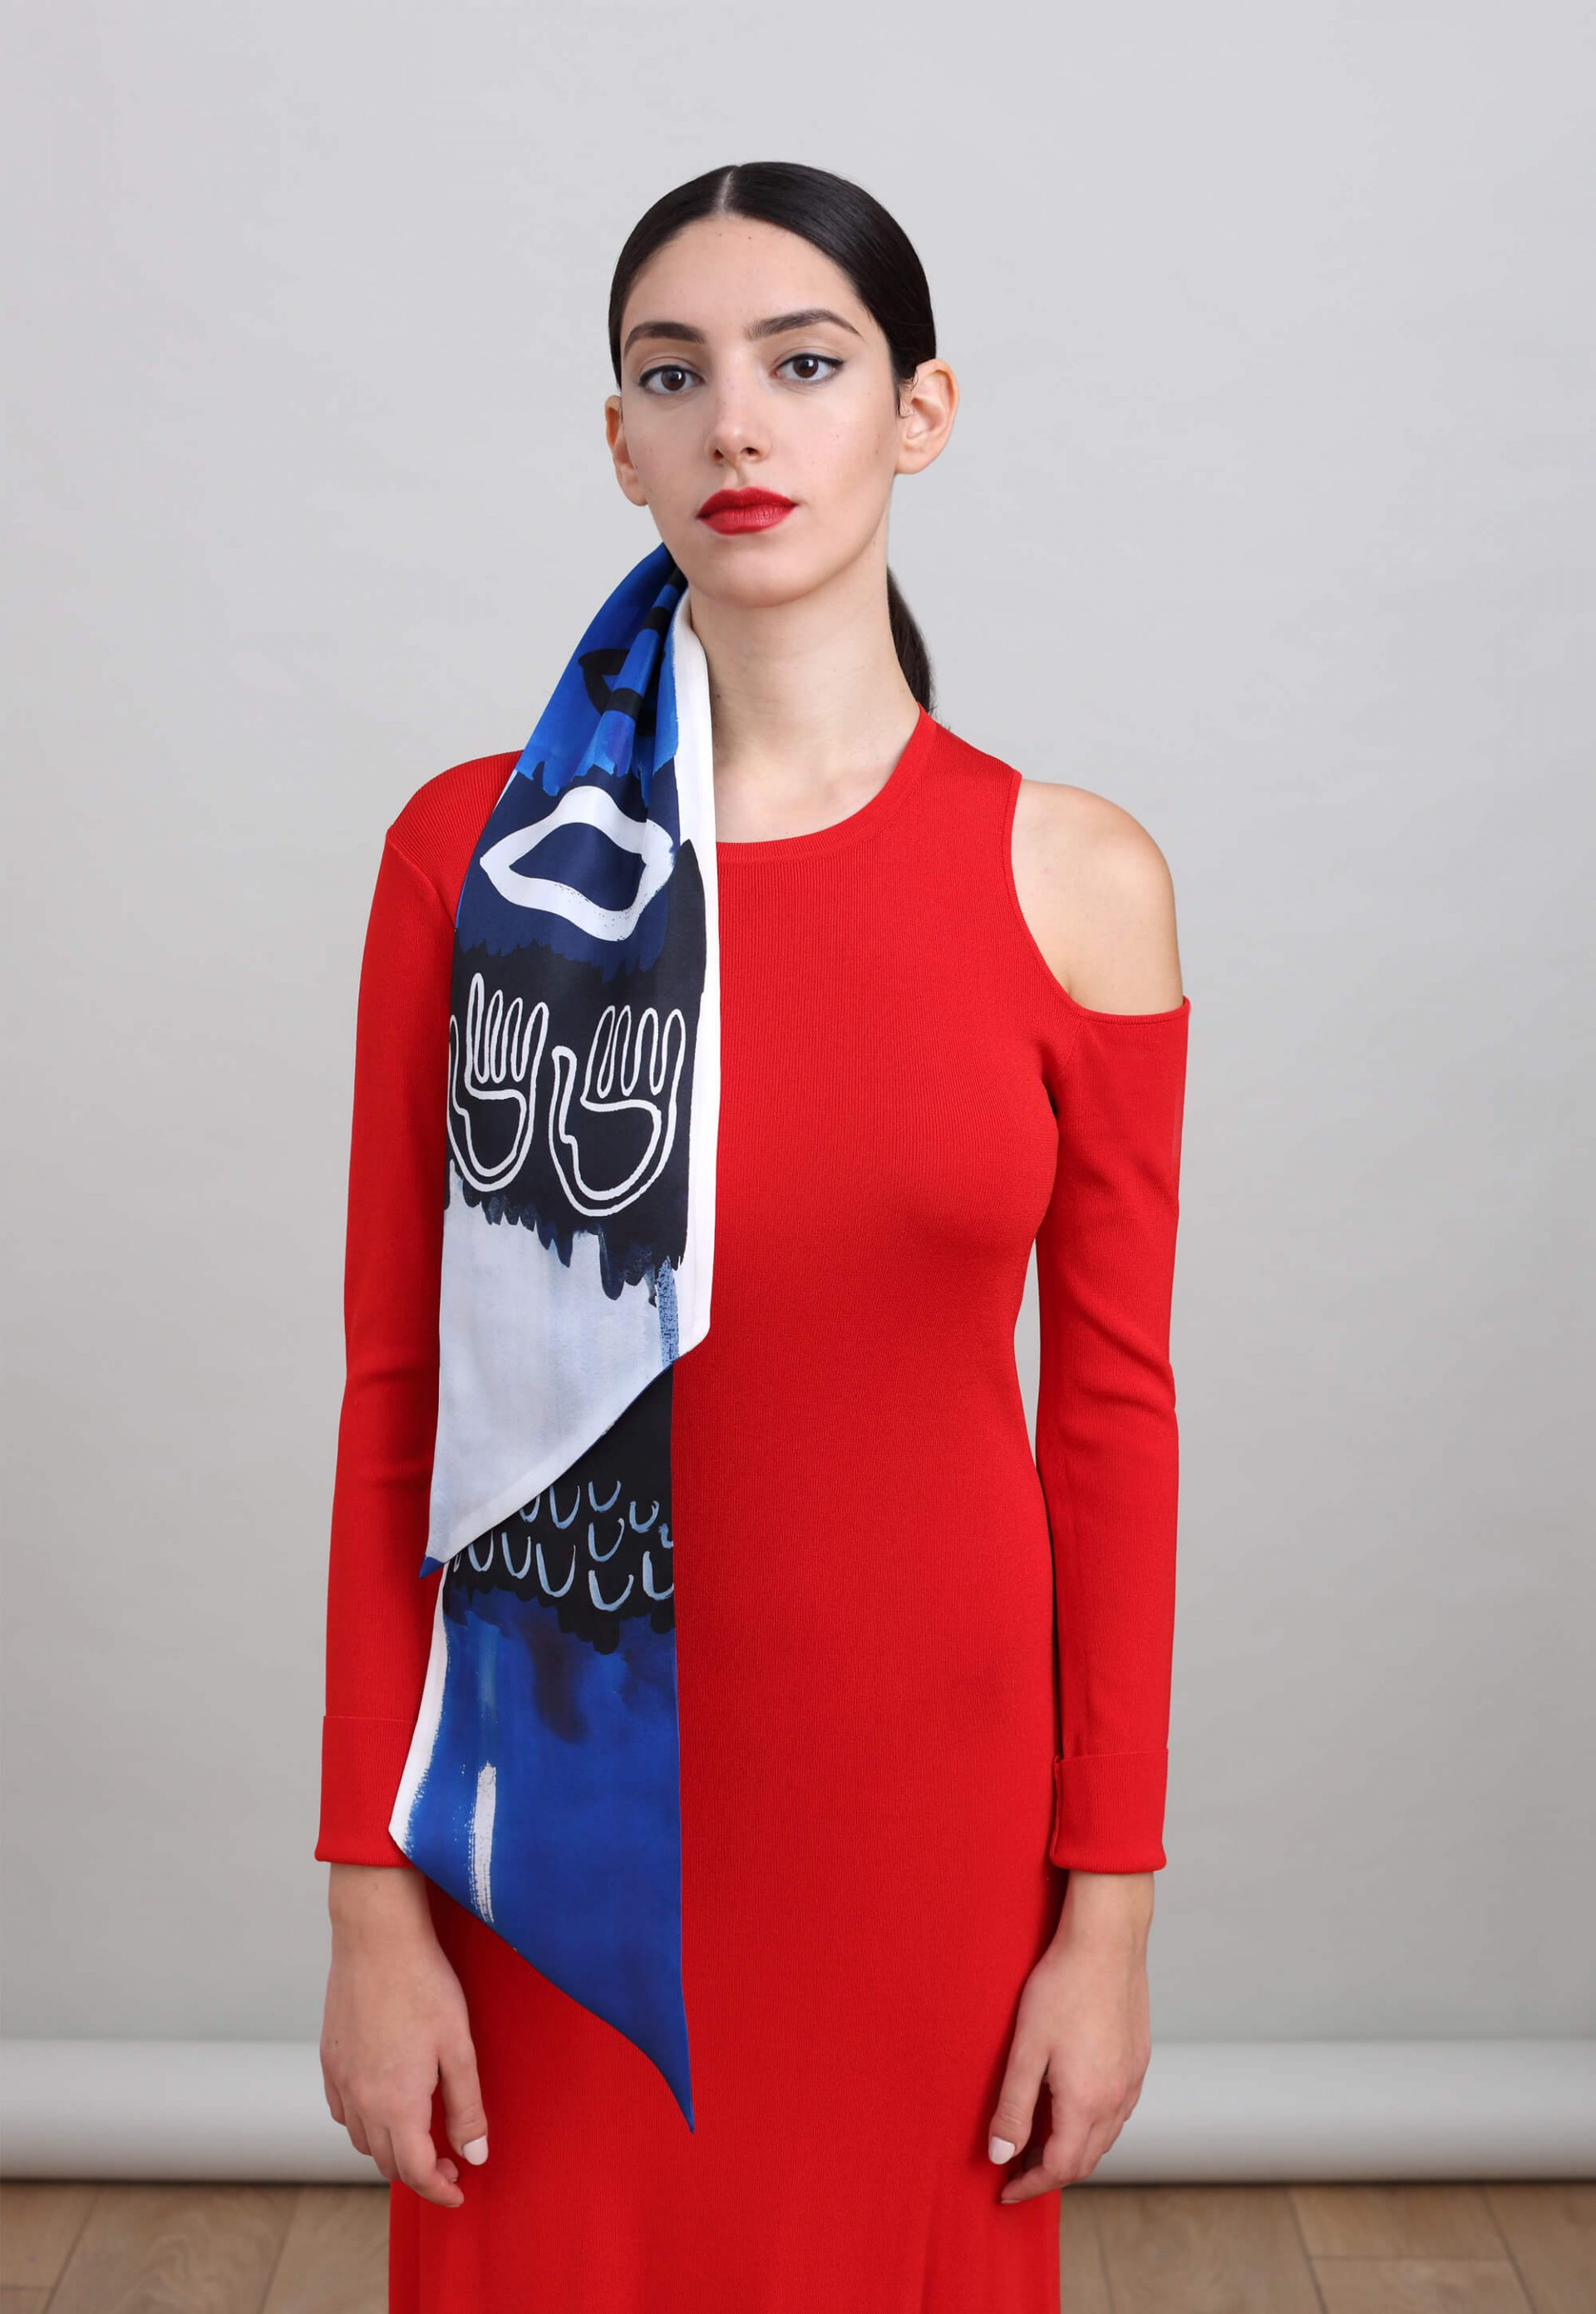 Printed silk scarf in long narrow shape and diagonal edges, in Blue, Black and White